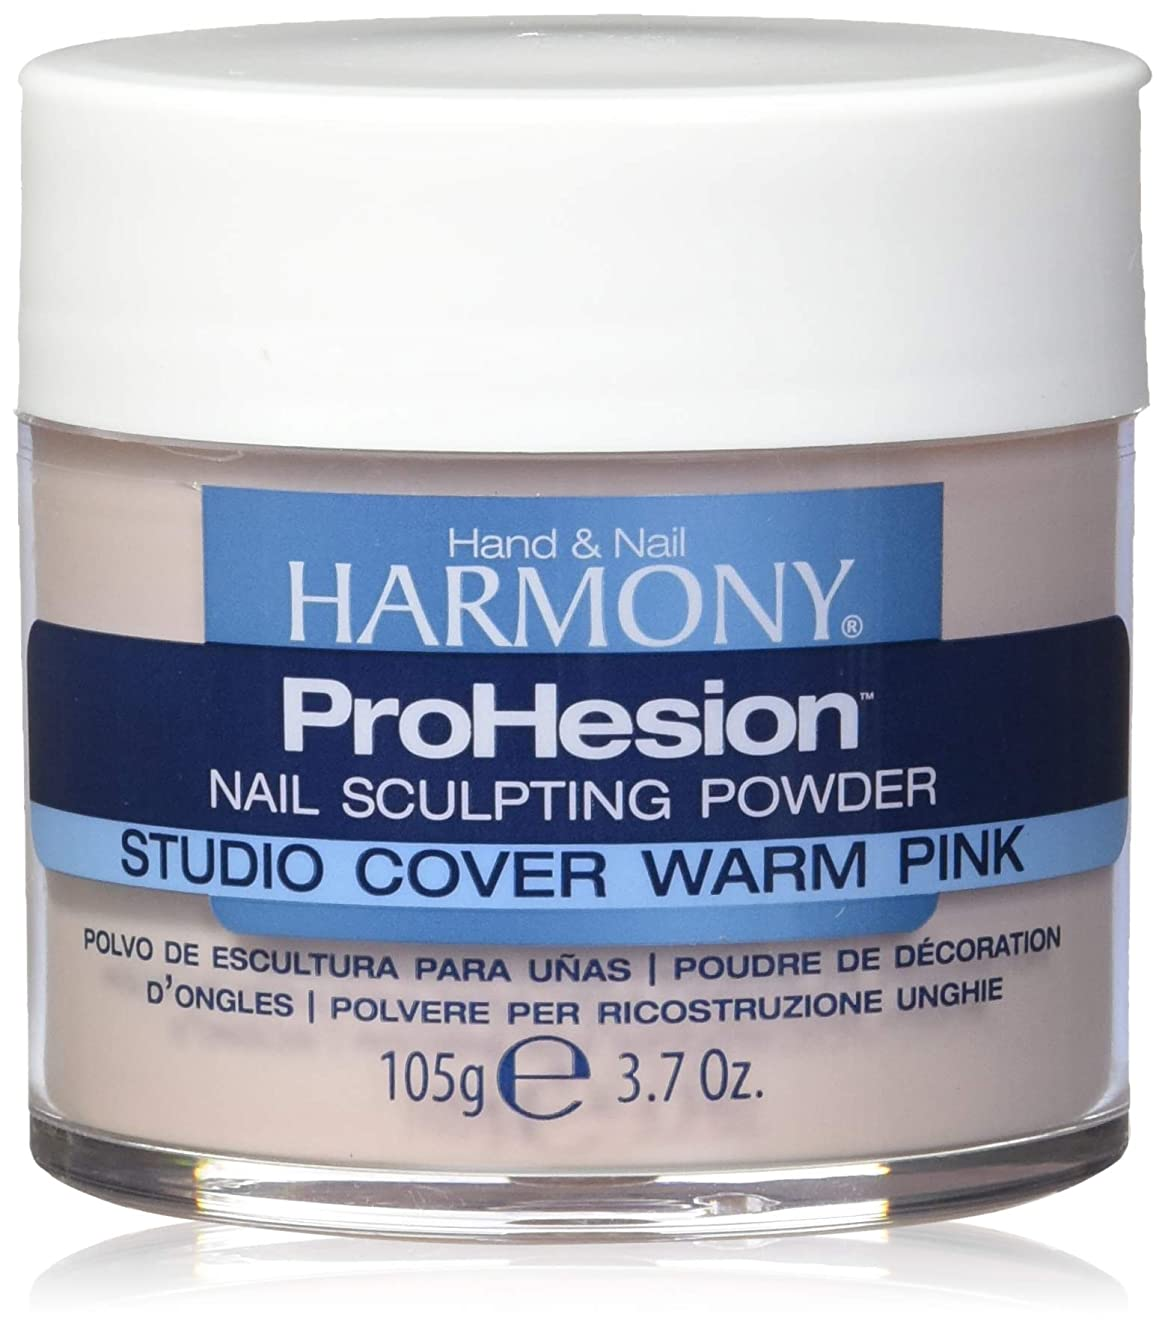 余剰寮を除くHarmony Prohesion Sculpting Powder - Studio Cover Warm Pink - 3.7oz / 105g